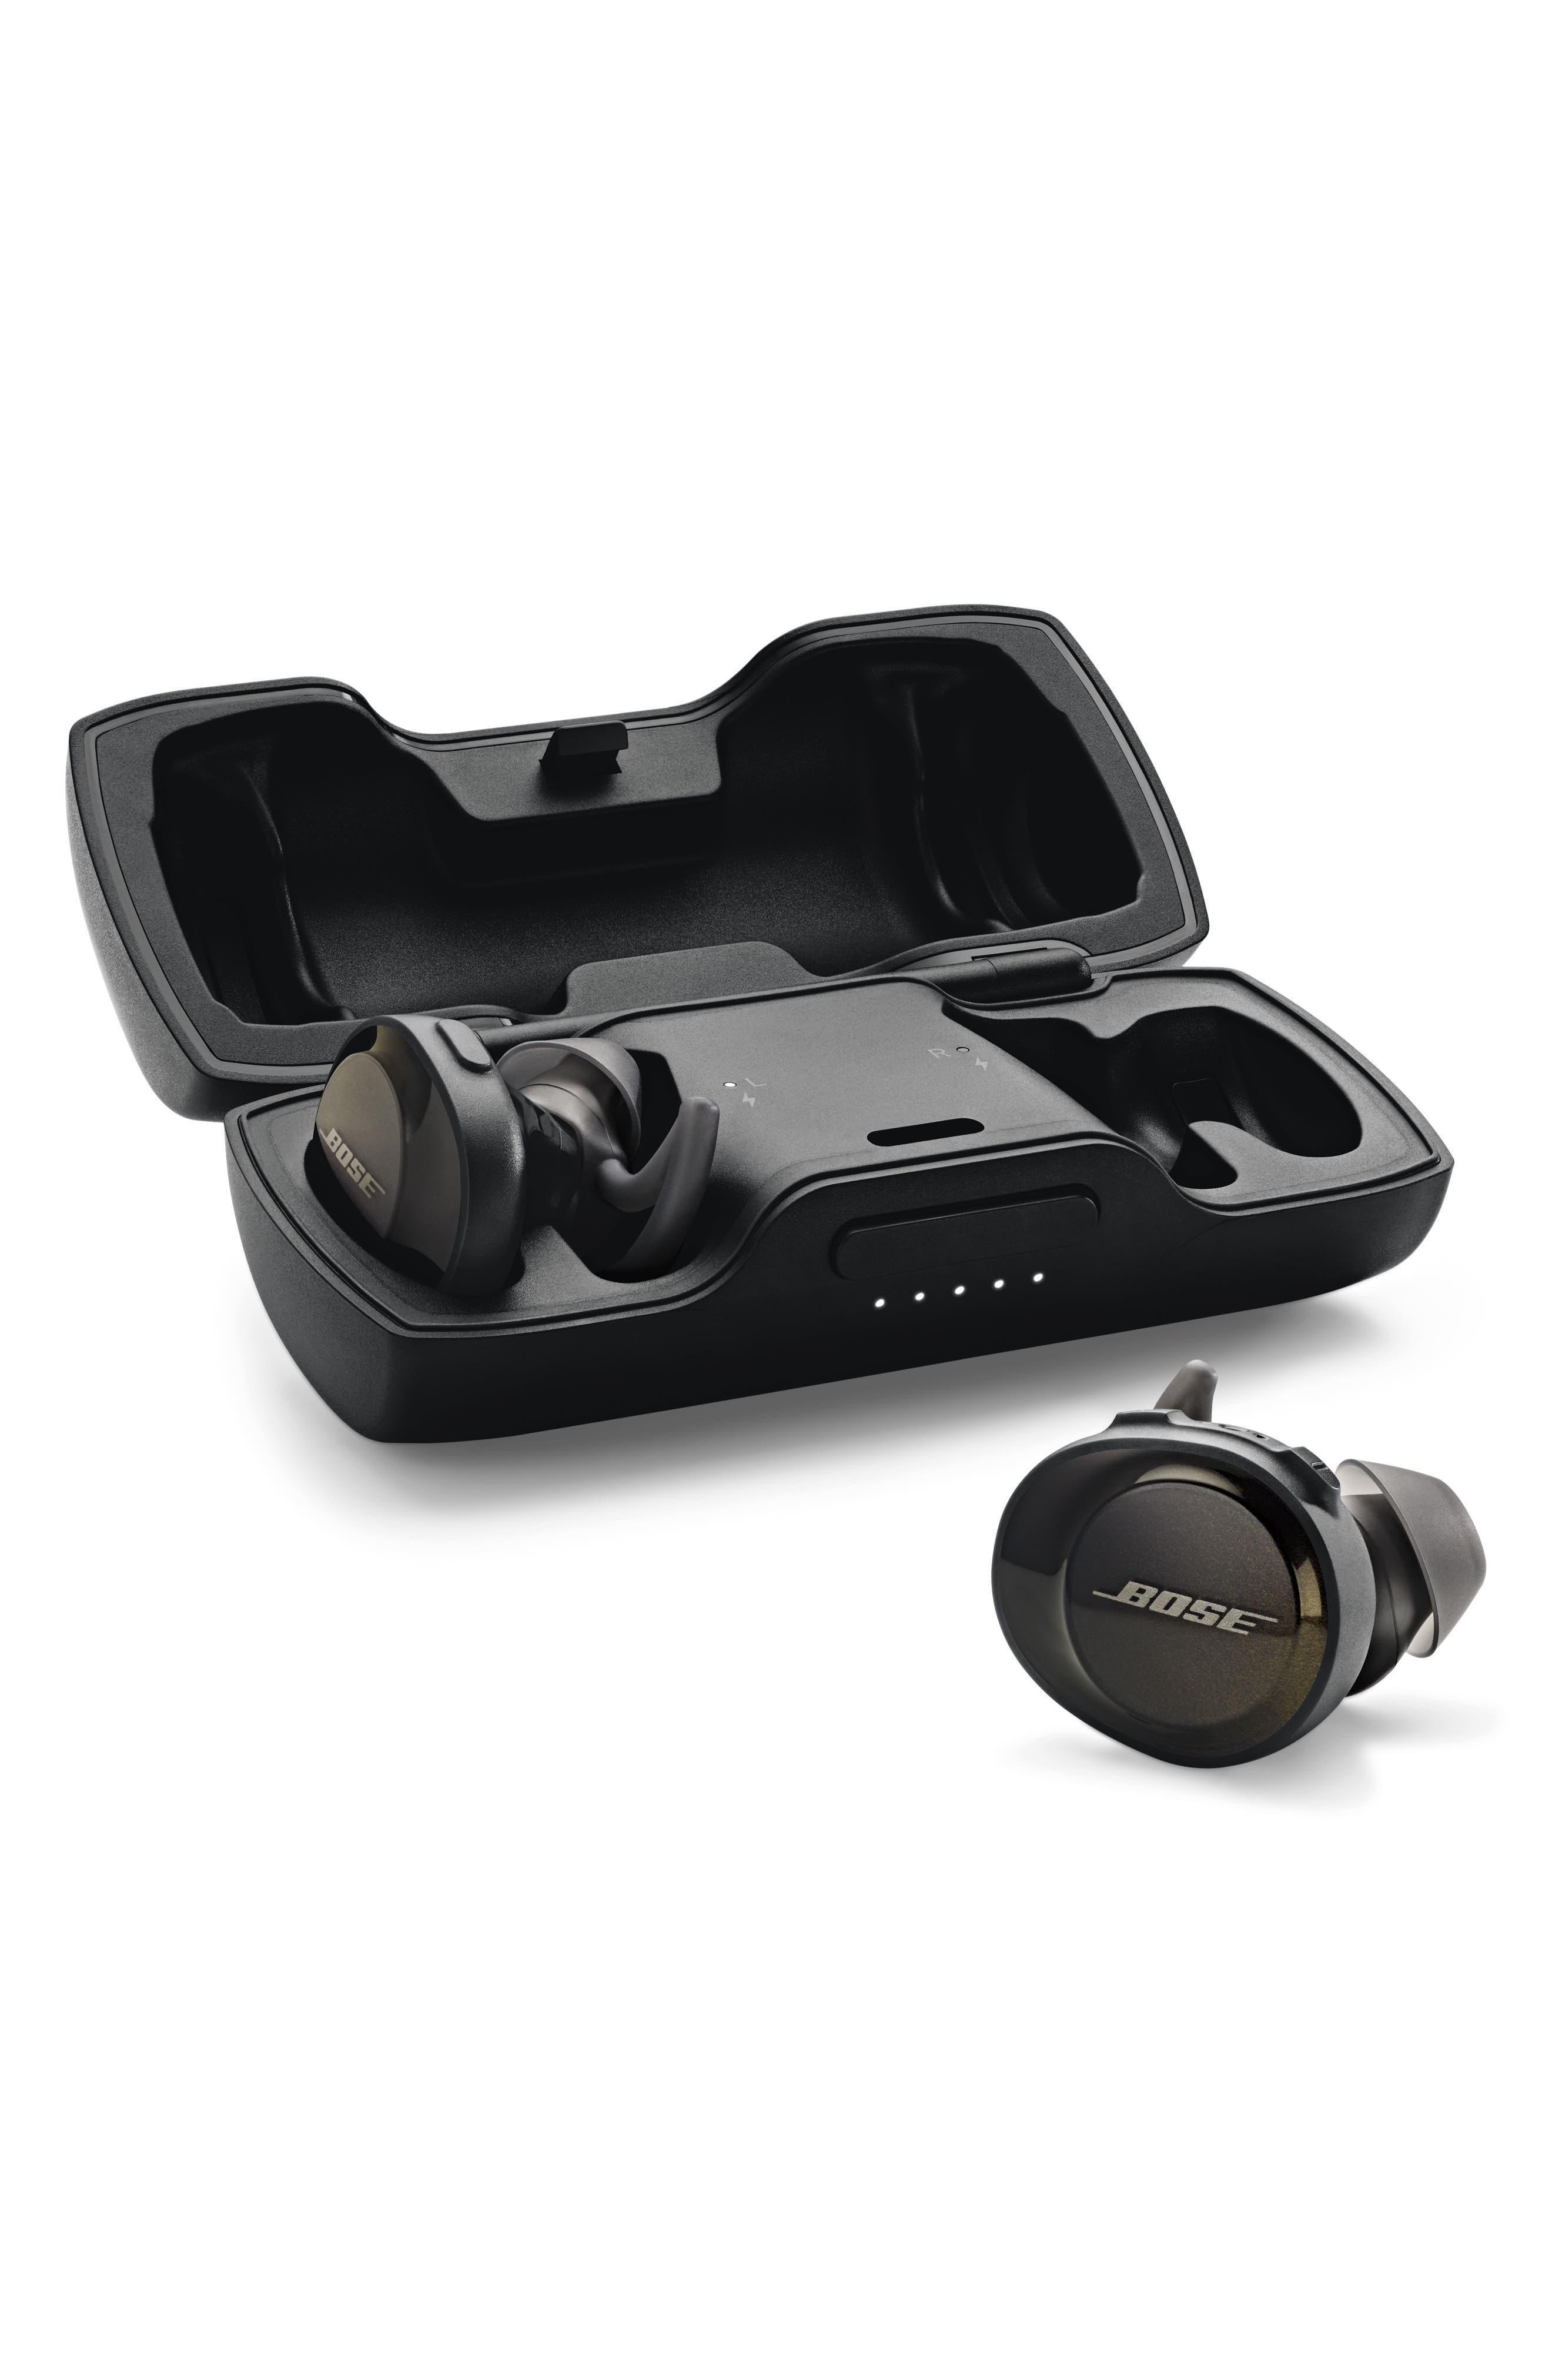 SoundSport<sup>®</sup> Free Wireless Headphones,                             Alternate thumbnail 8, color,                             Black